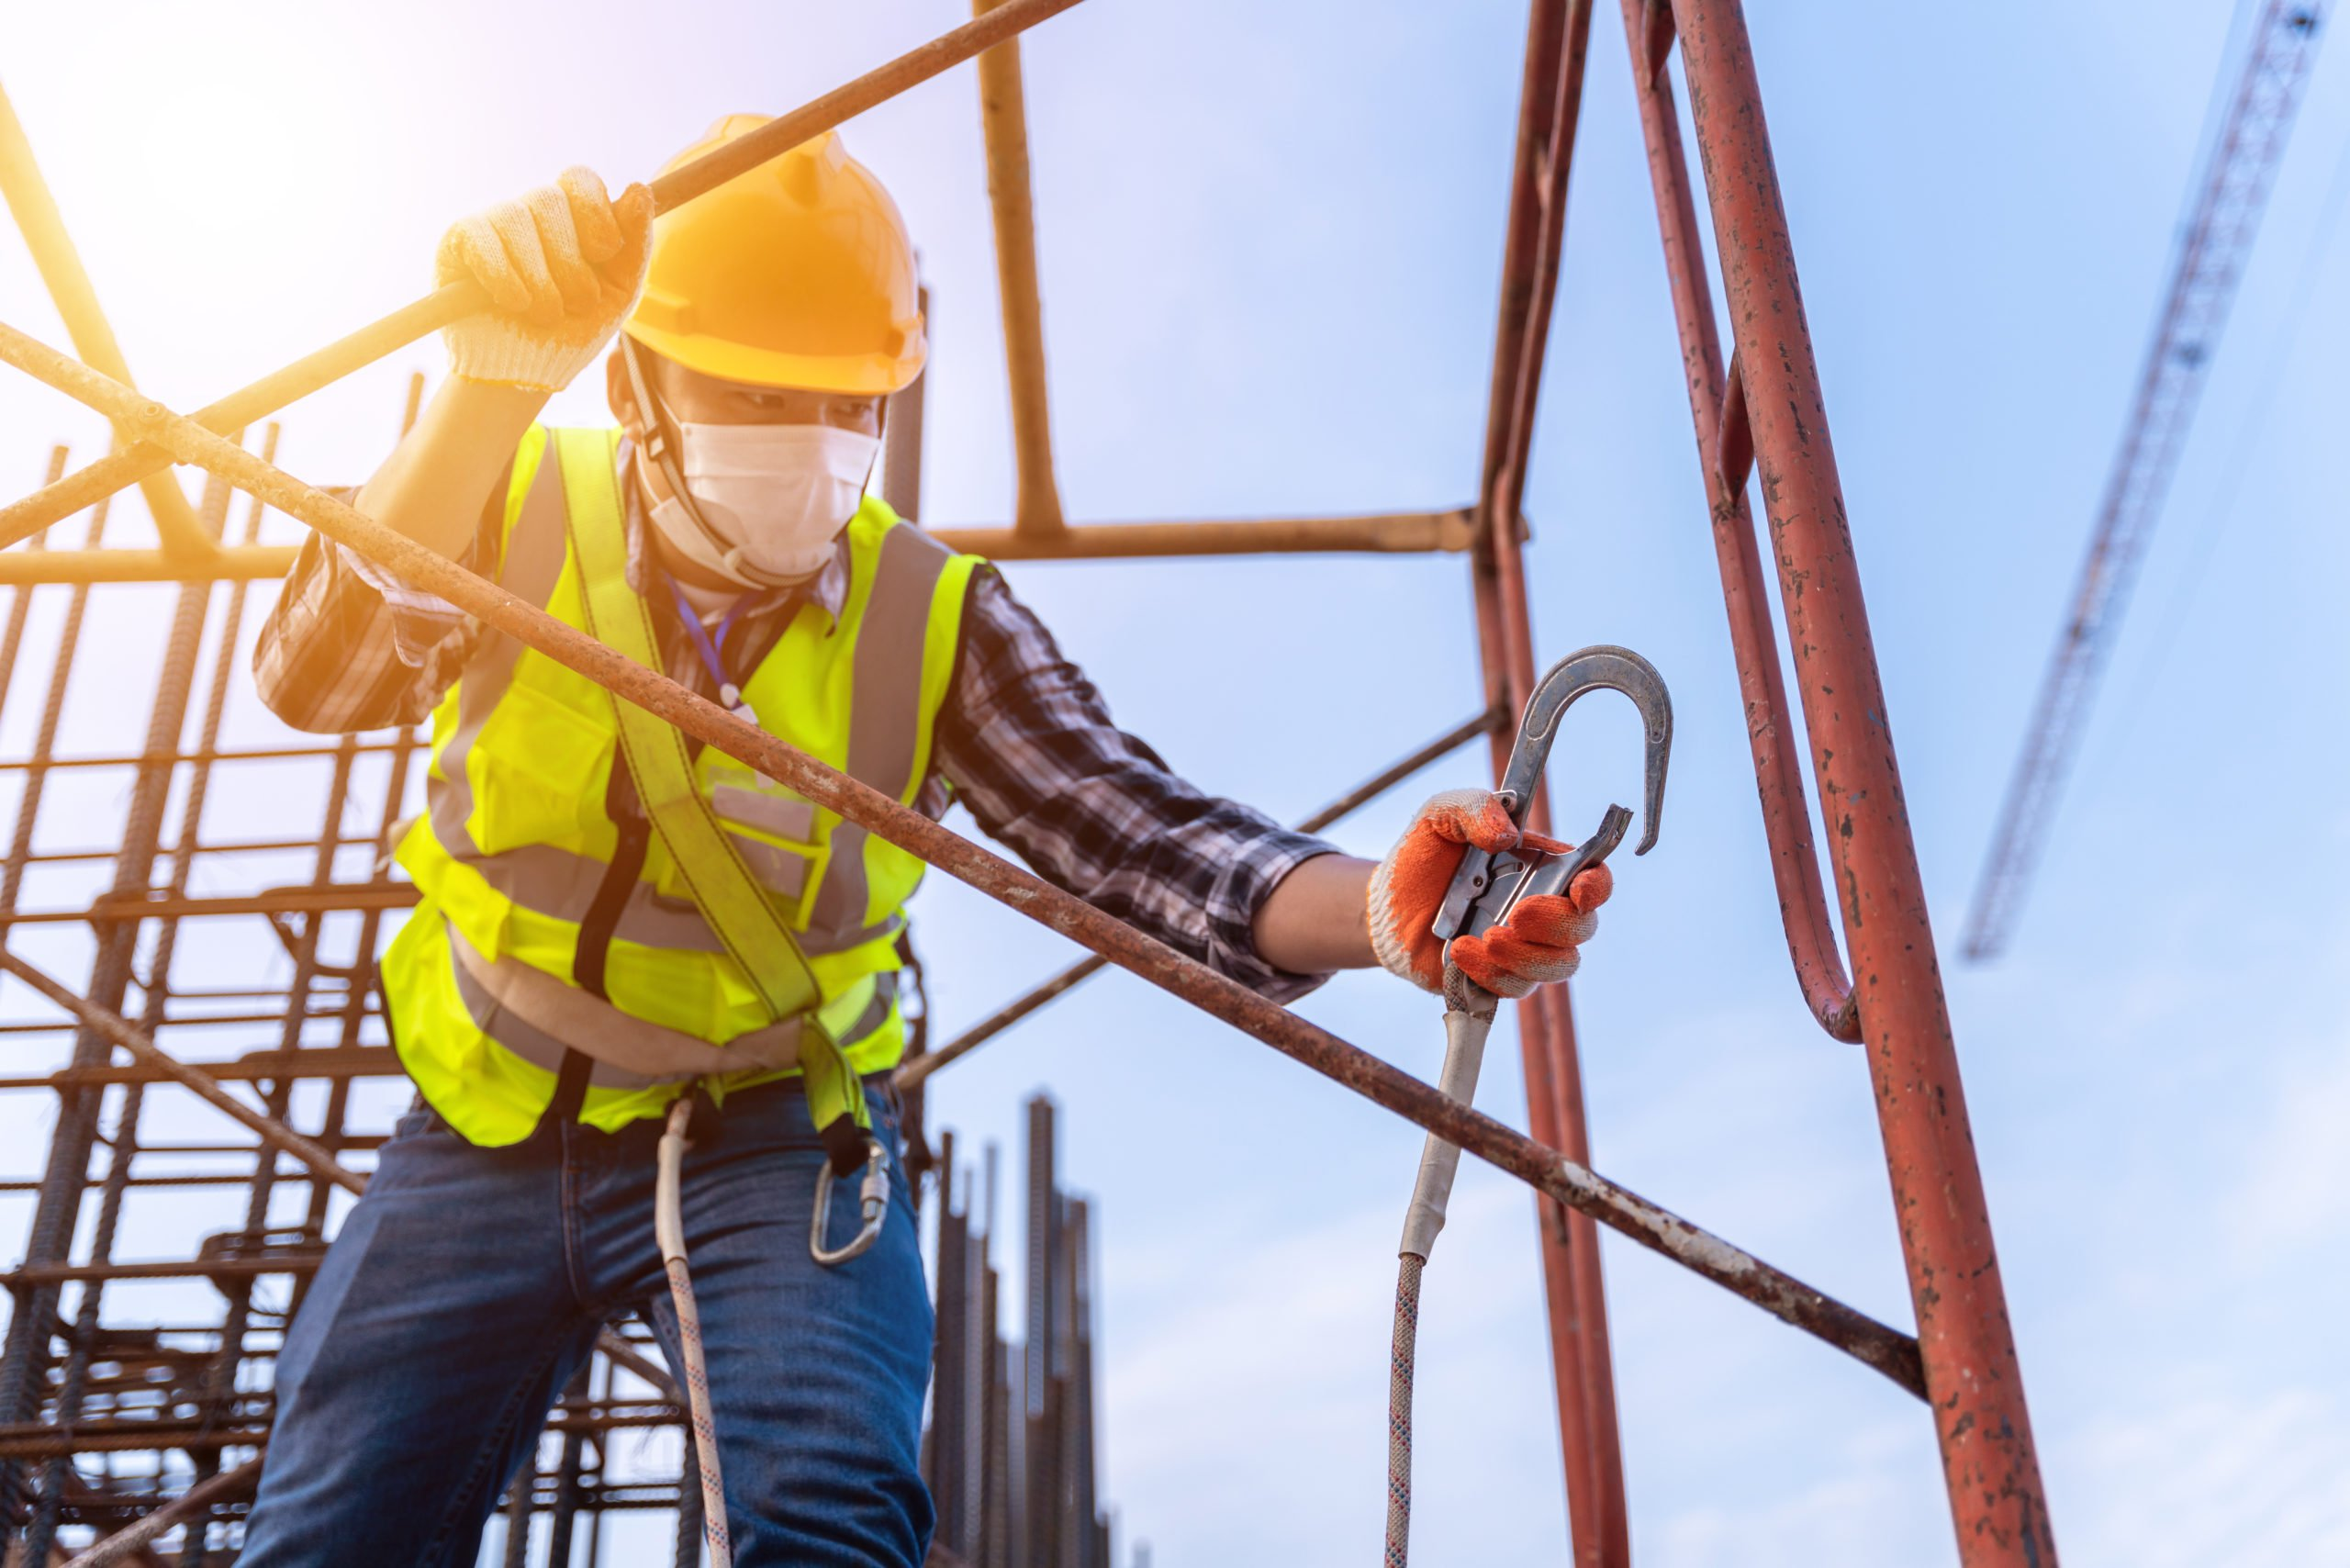 working safely at heights